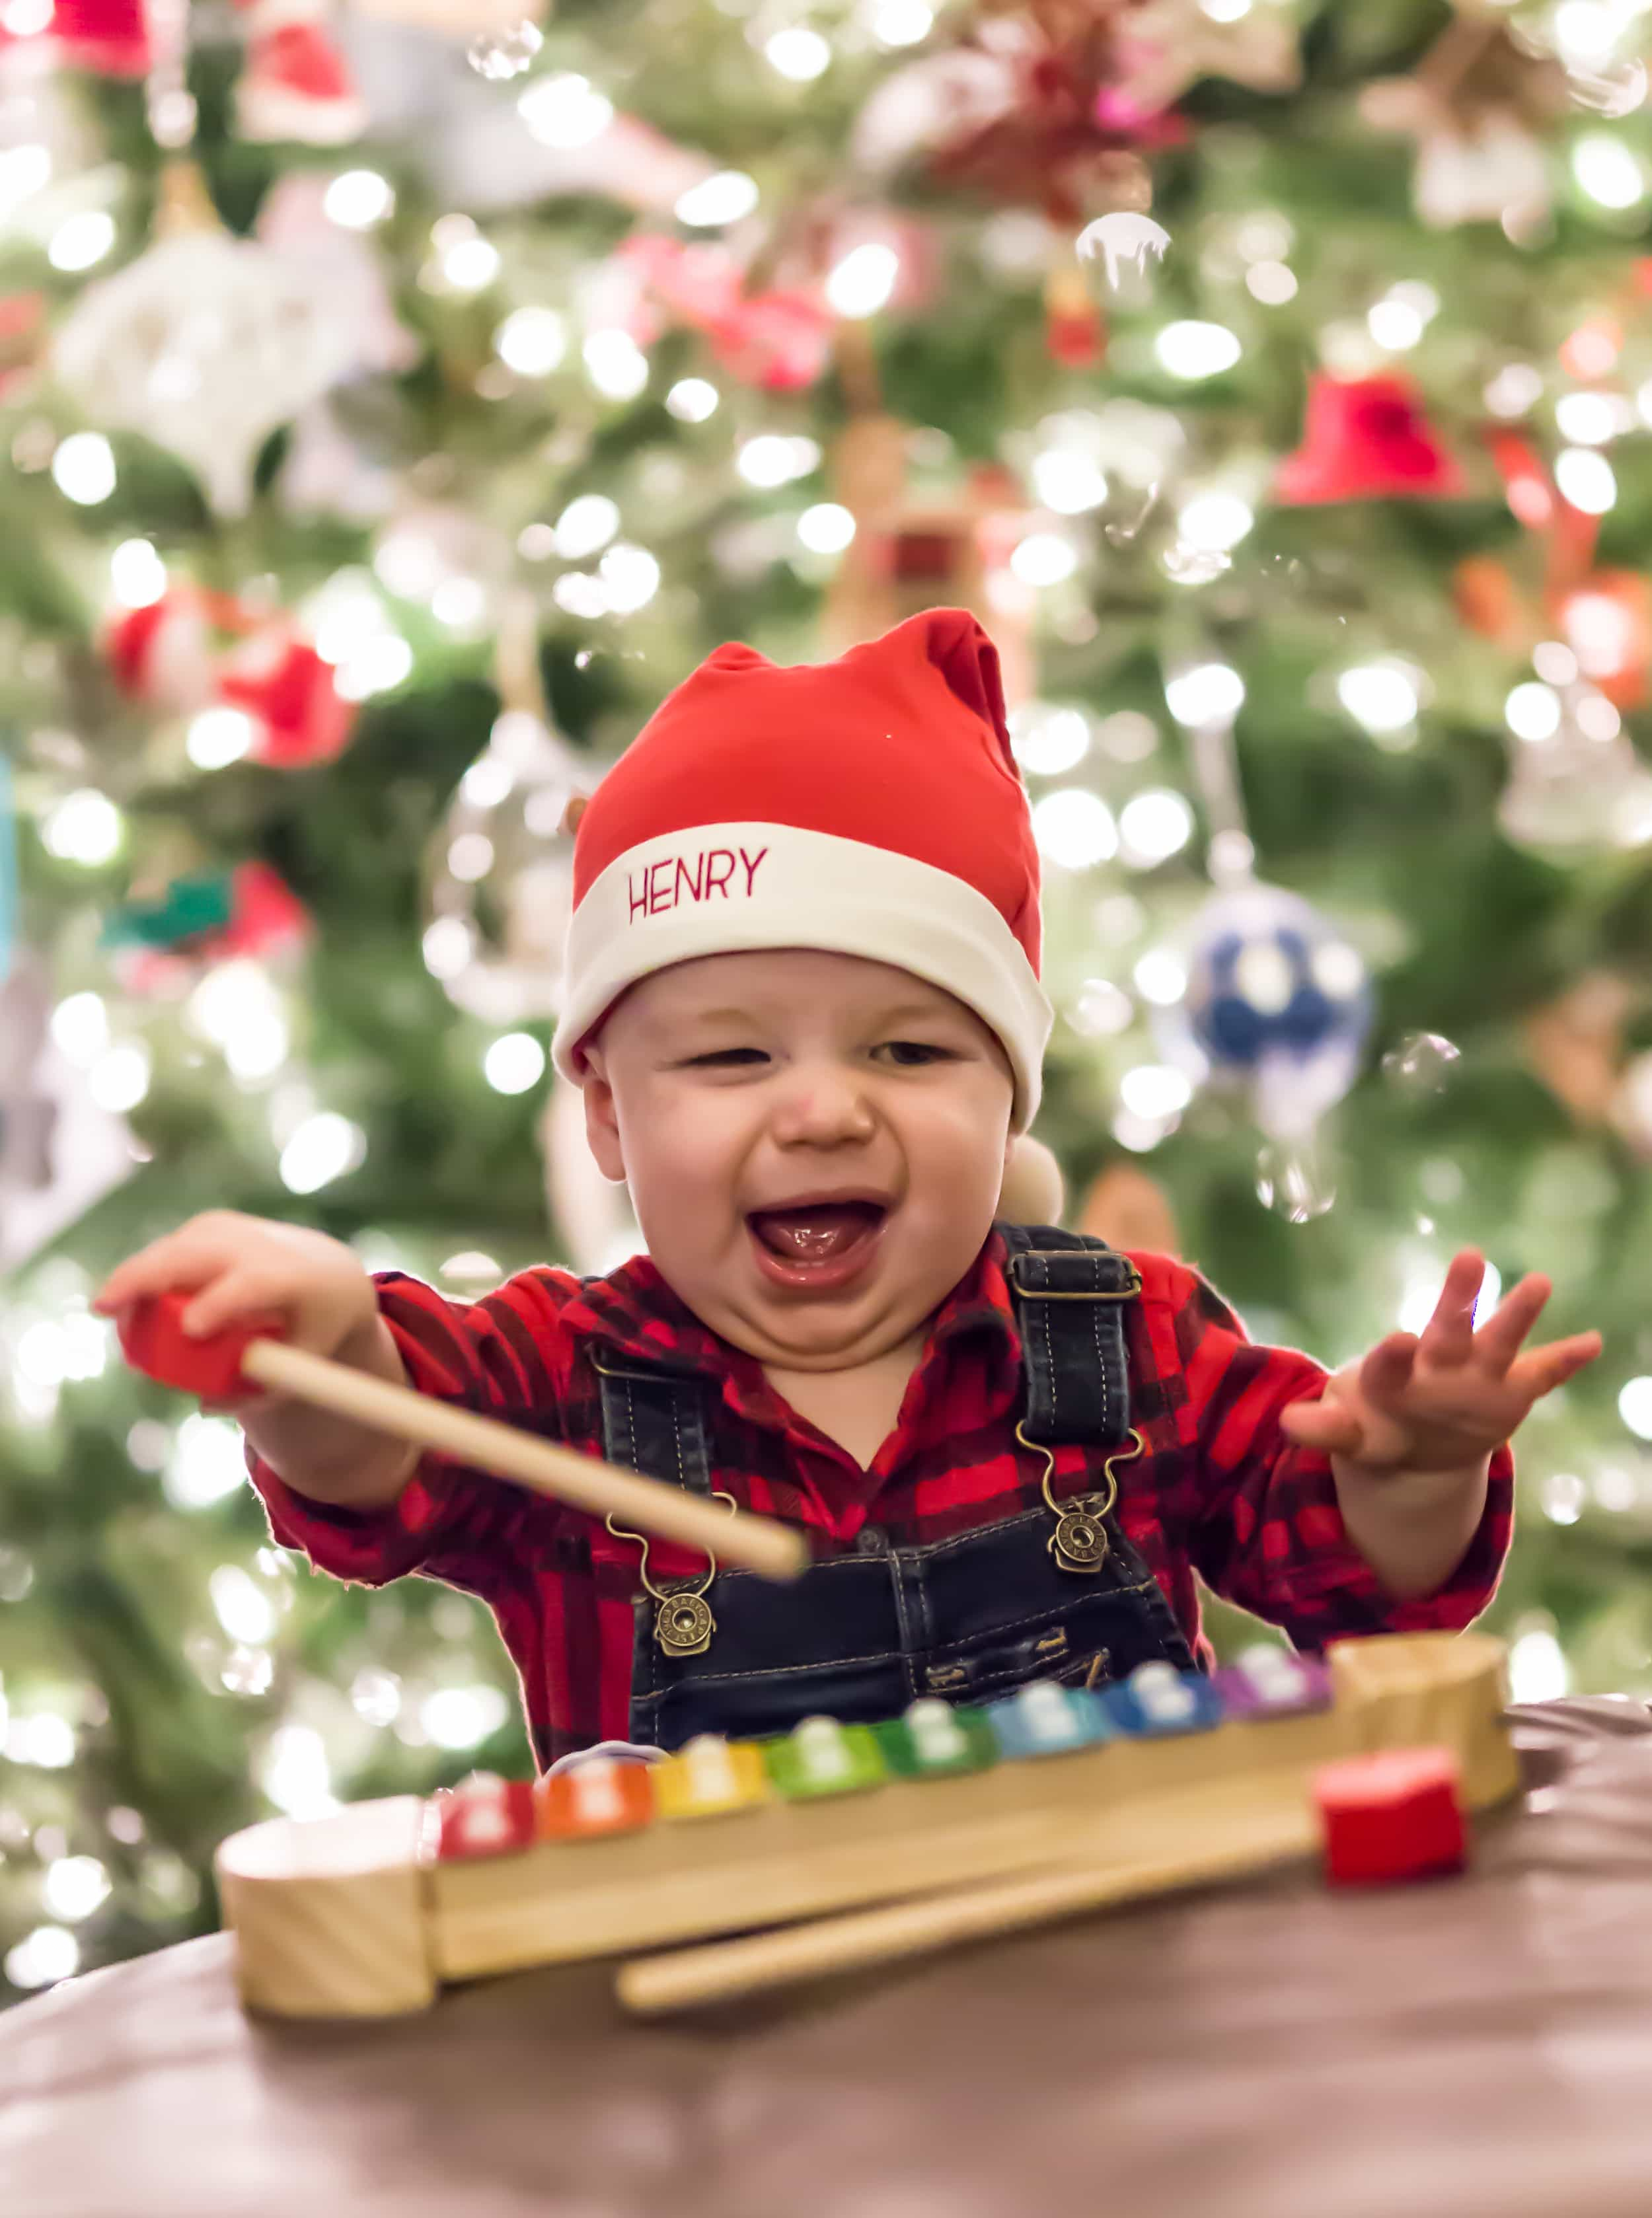 A baby in front of a christmas tree playing with a toy xylophone